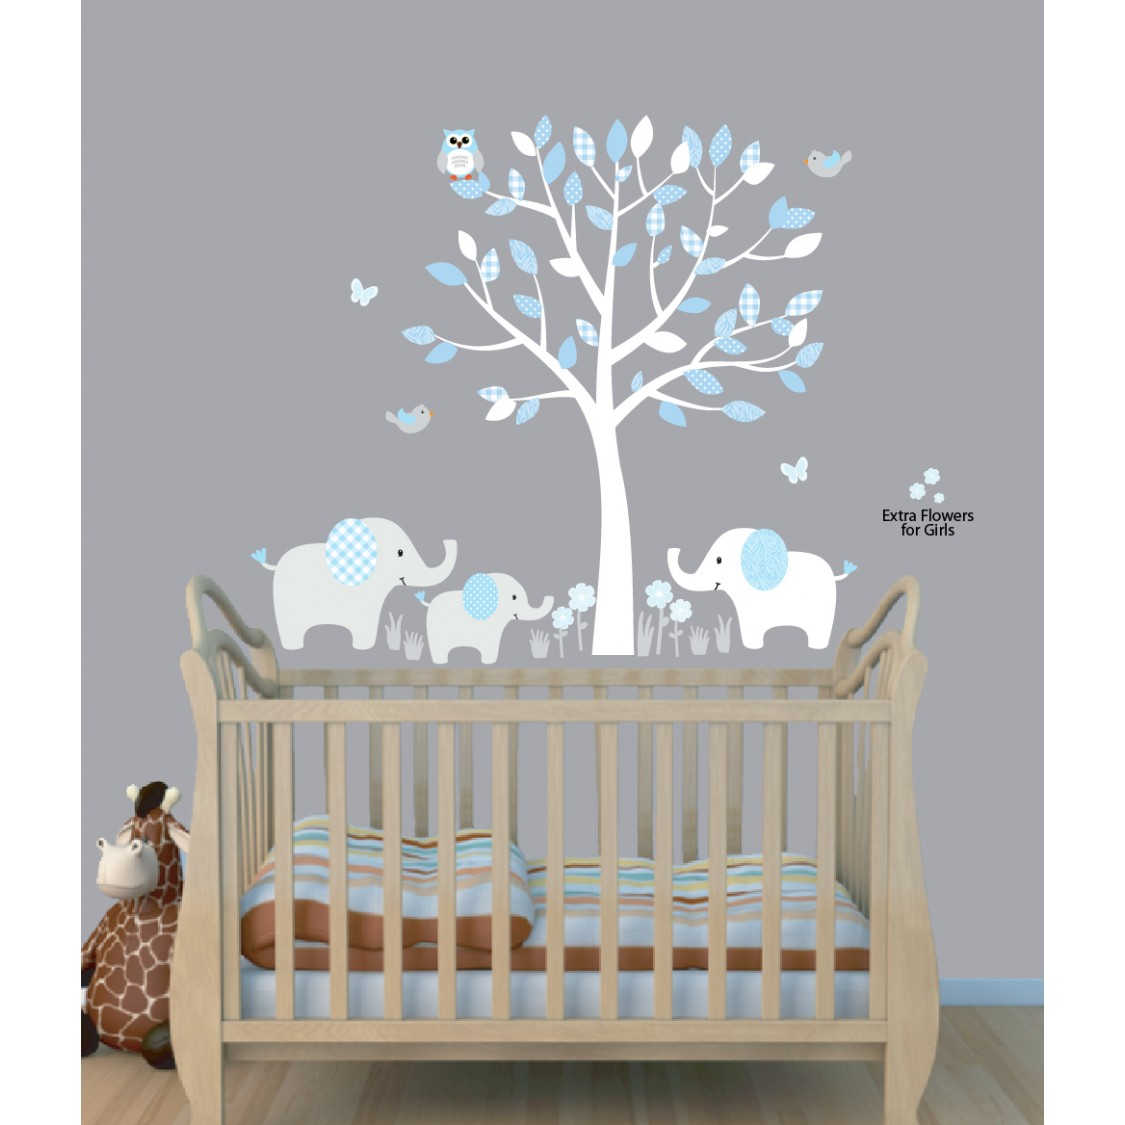 Attractive Blue Nursery Jungle Wall Decals With Elephant Wall Decal For Boys Rooms